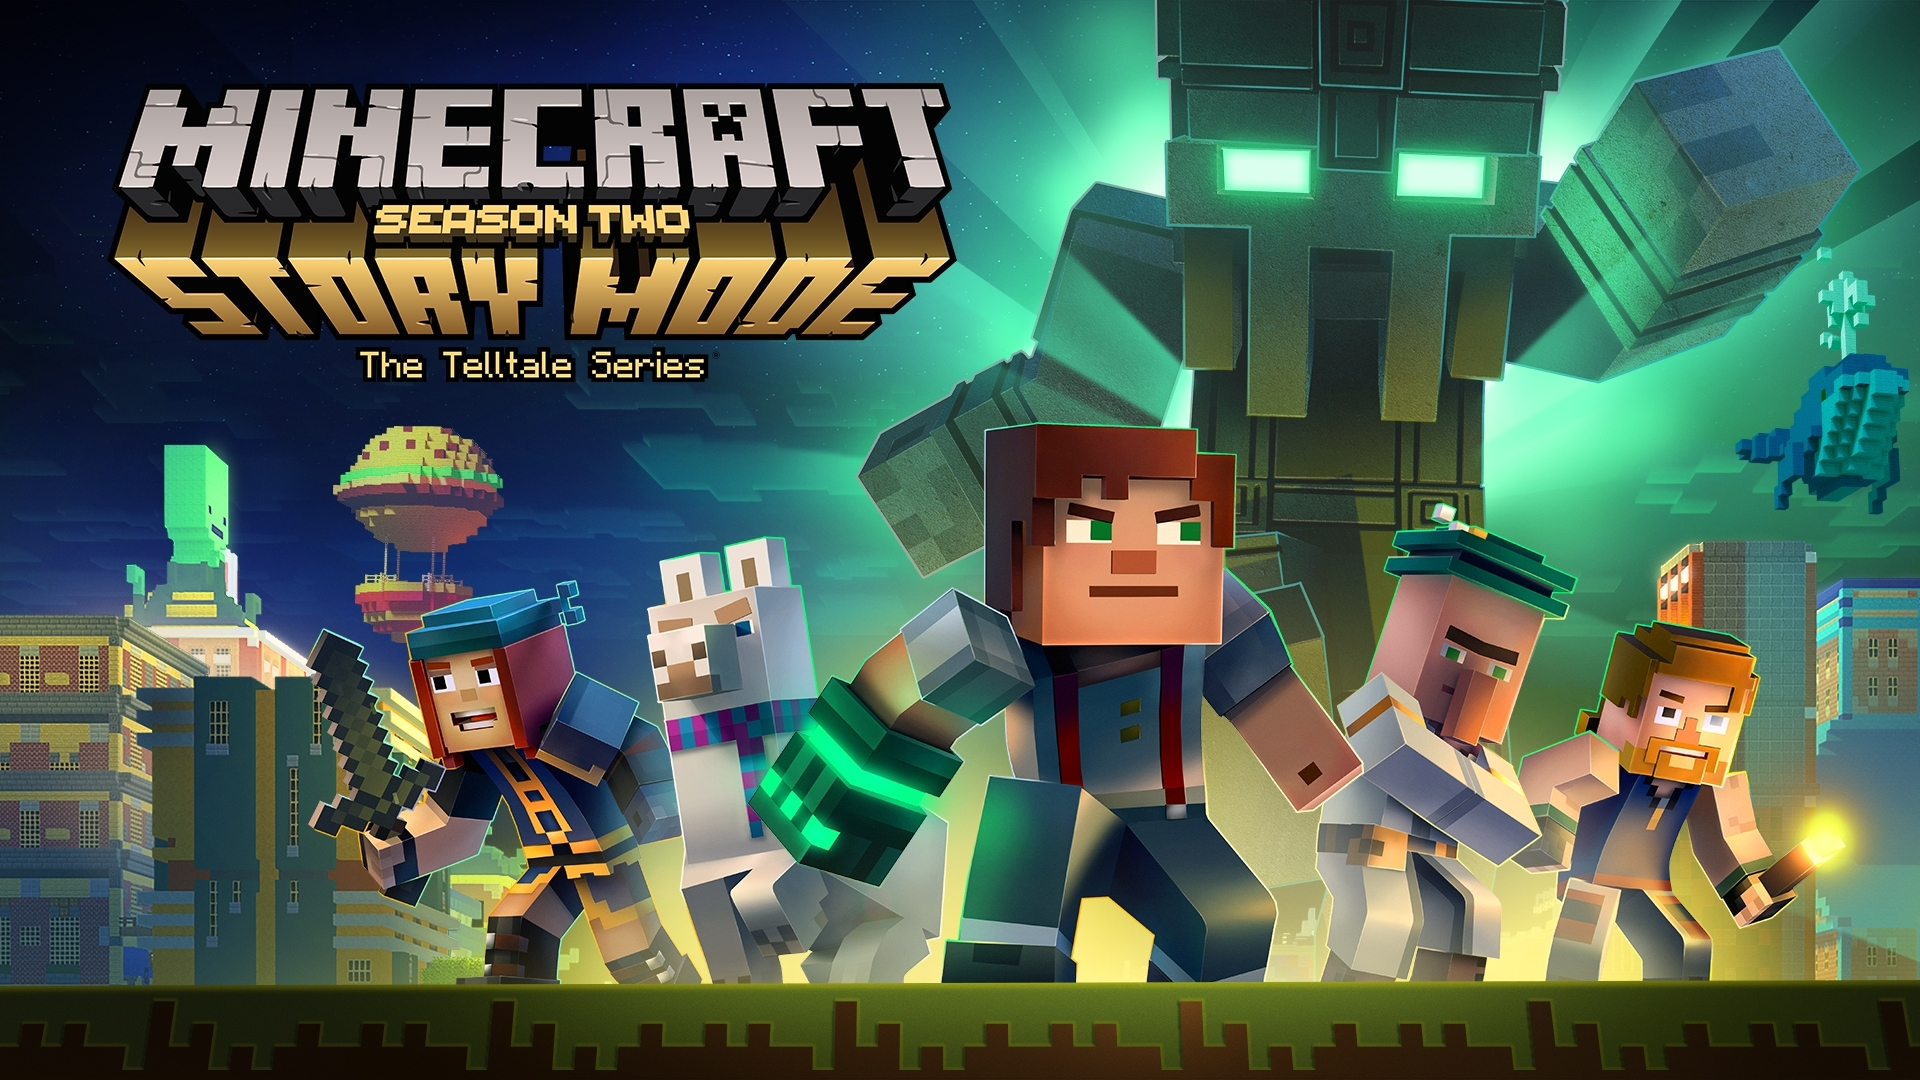 minecraft: story mode: season 2 gets new trailer to kick off a new